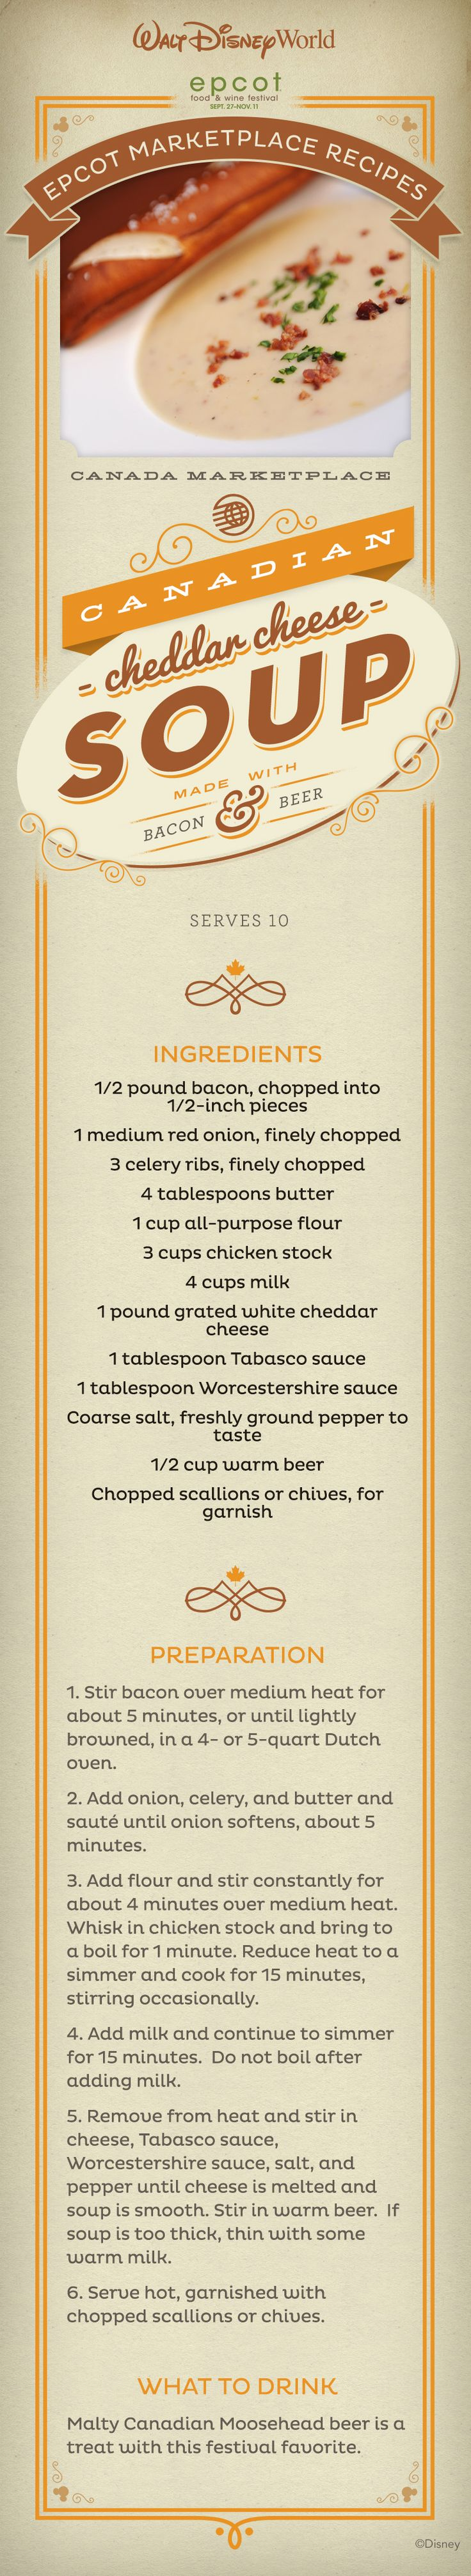 Canadian Cheddar Cheese Soup - Canada Marketplace, EPCOT Food and Wine Festival